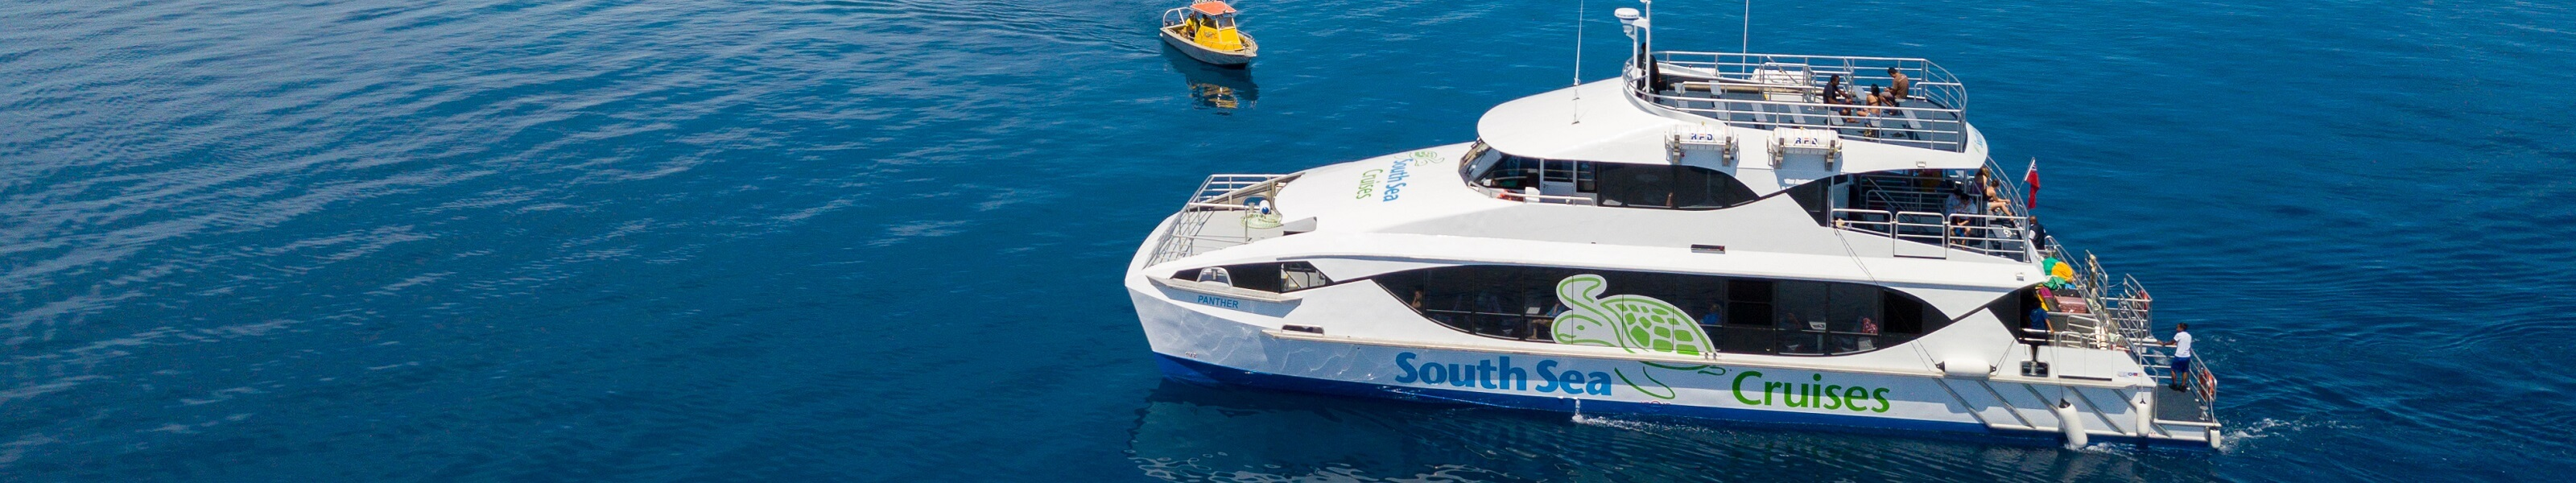 About South Sea Cruises